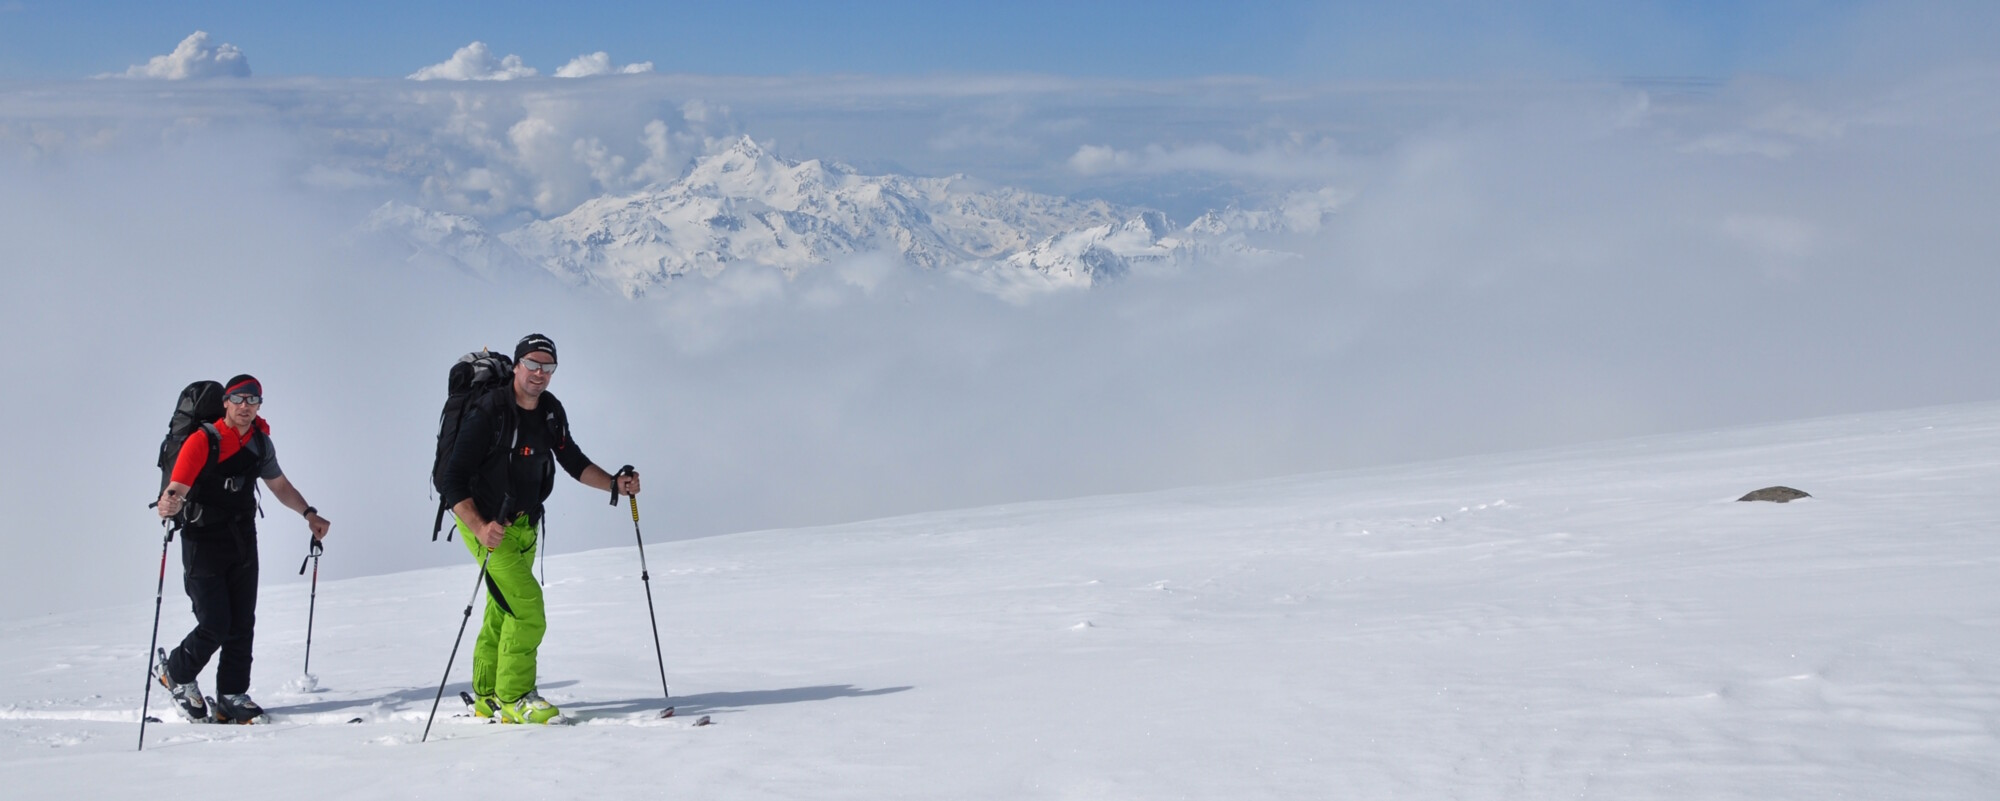 Elbrus Ski Mountaineering - Climb and Ski Elbrus, 2 members on skis.